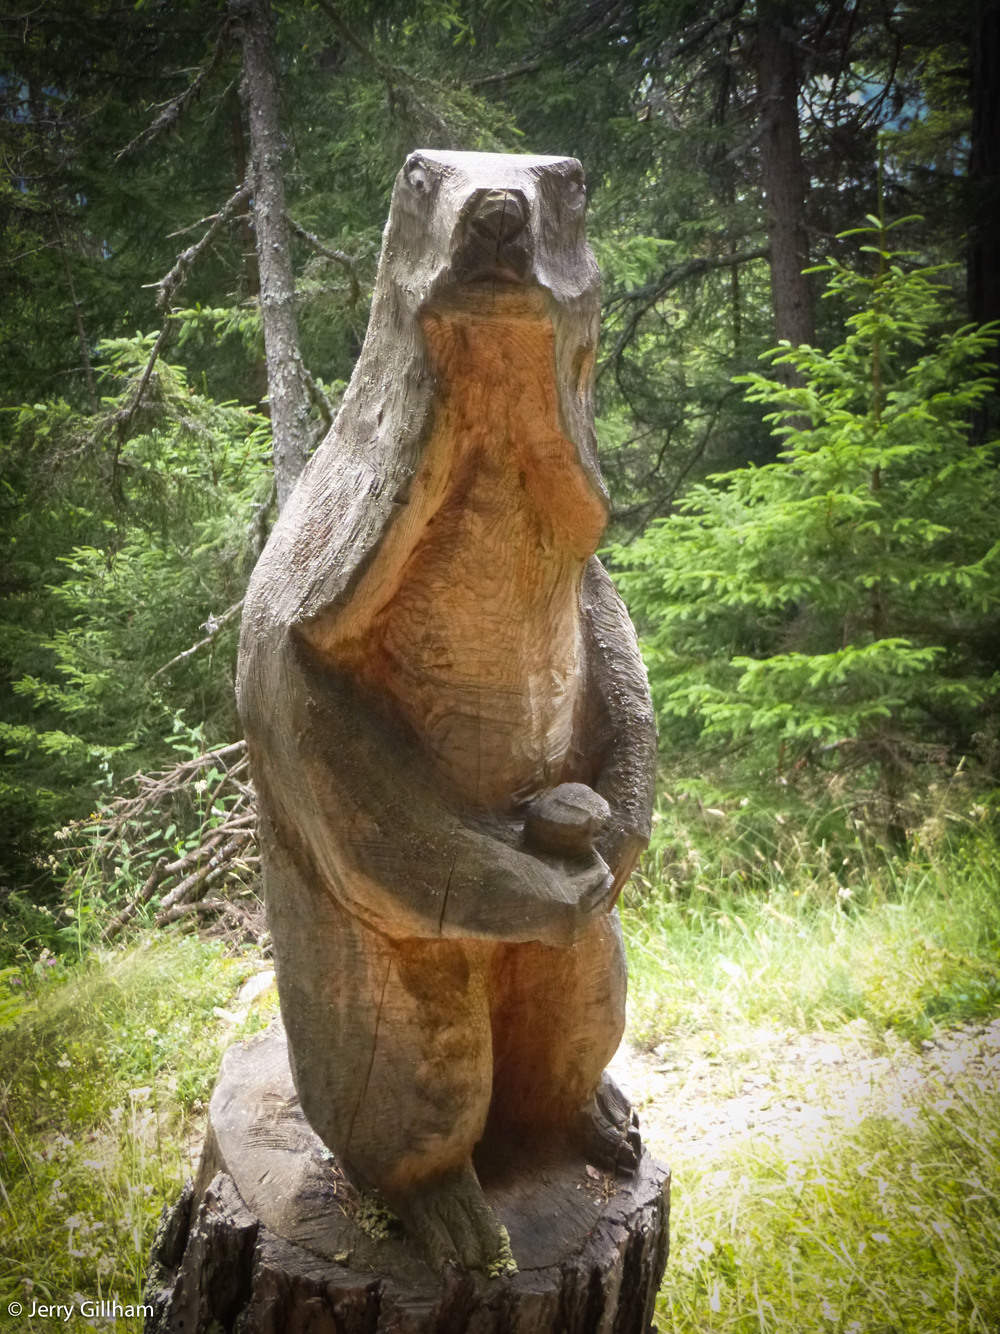 Furious wooden marmot. Mind you, it appears he's been interrupted at a rather personal moment.